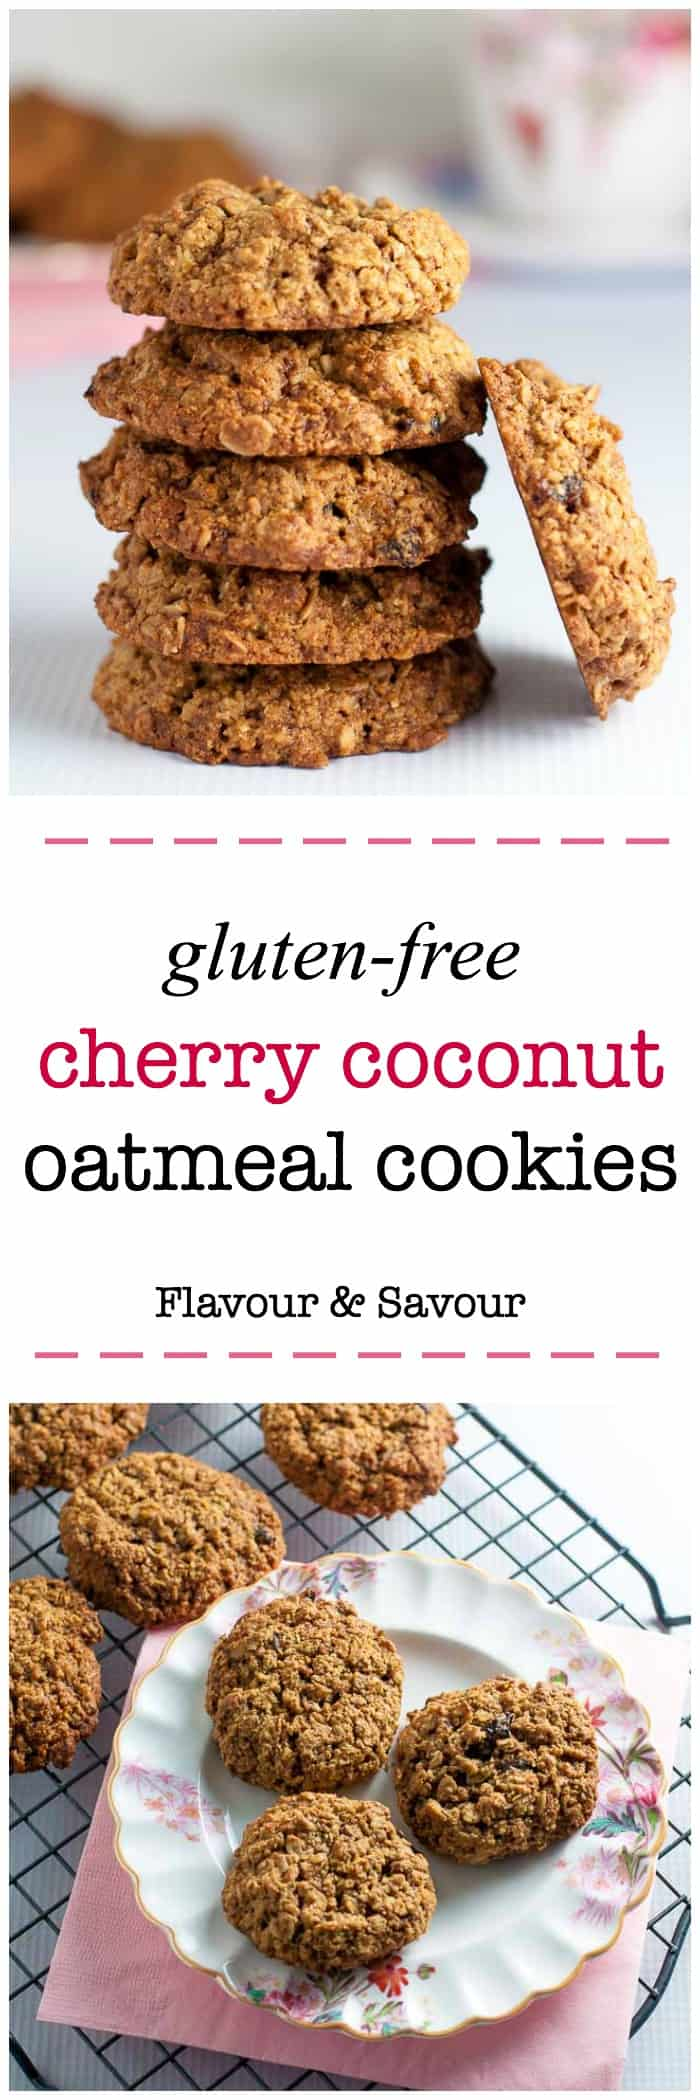 Gluten Free Cherry Coconut Oatmeal Cookies. Sweetened with low glycemic coconut palm sugar, these are a healthy option for cookie lovers!